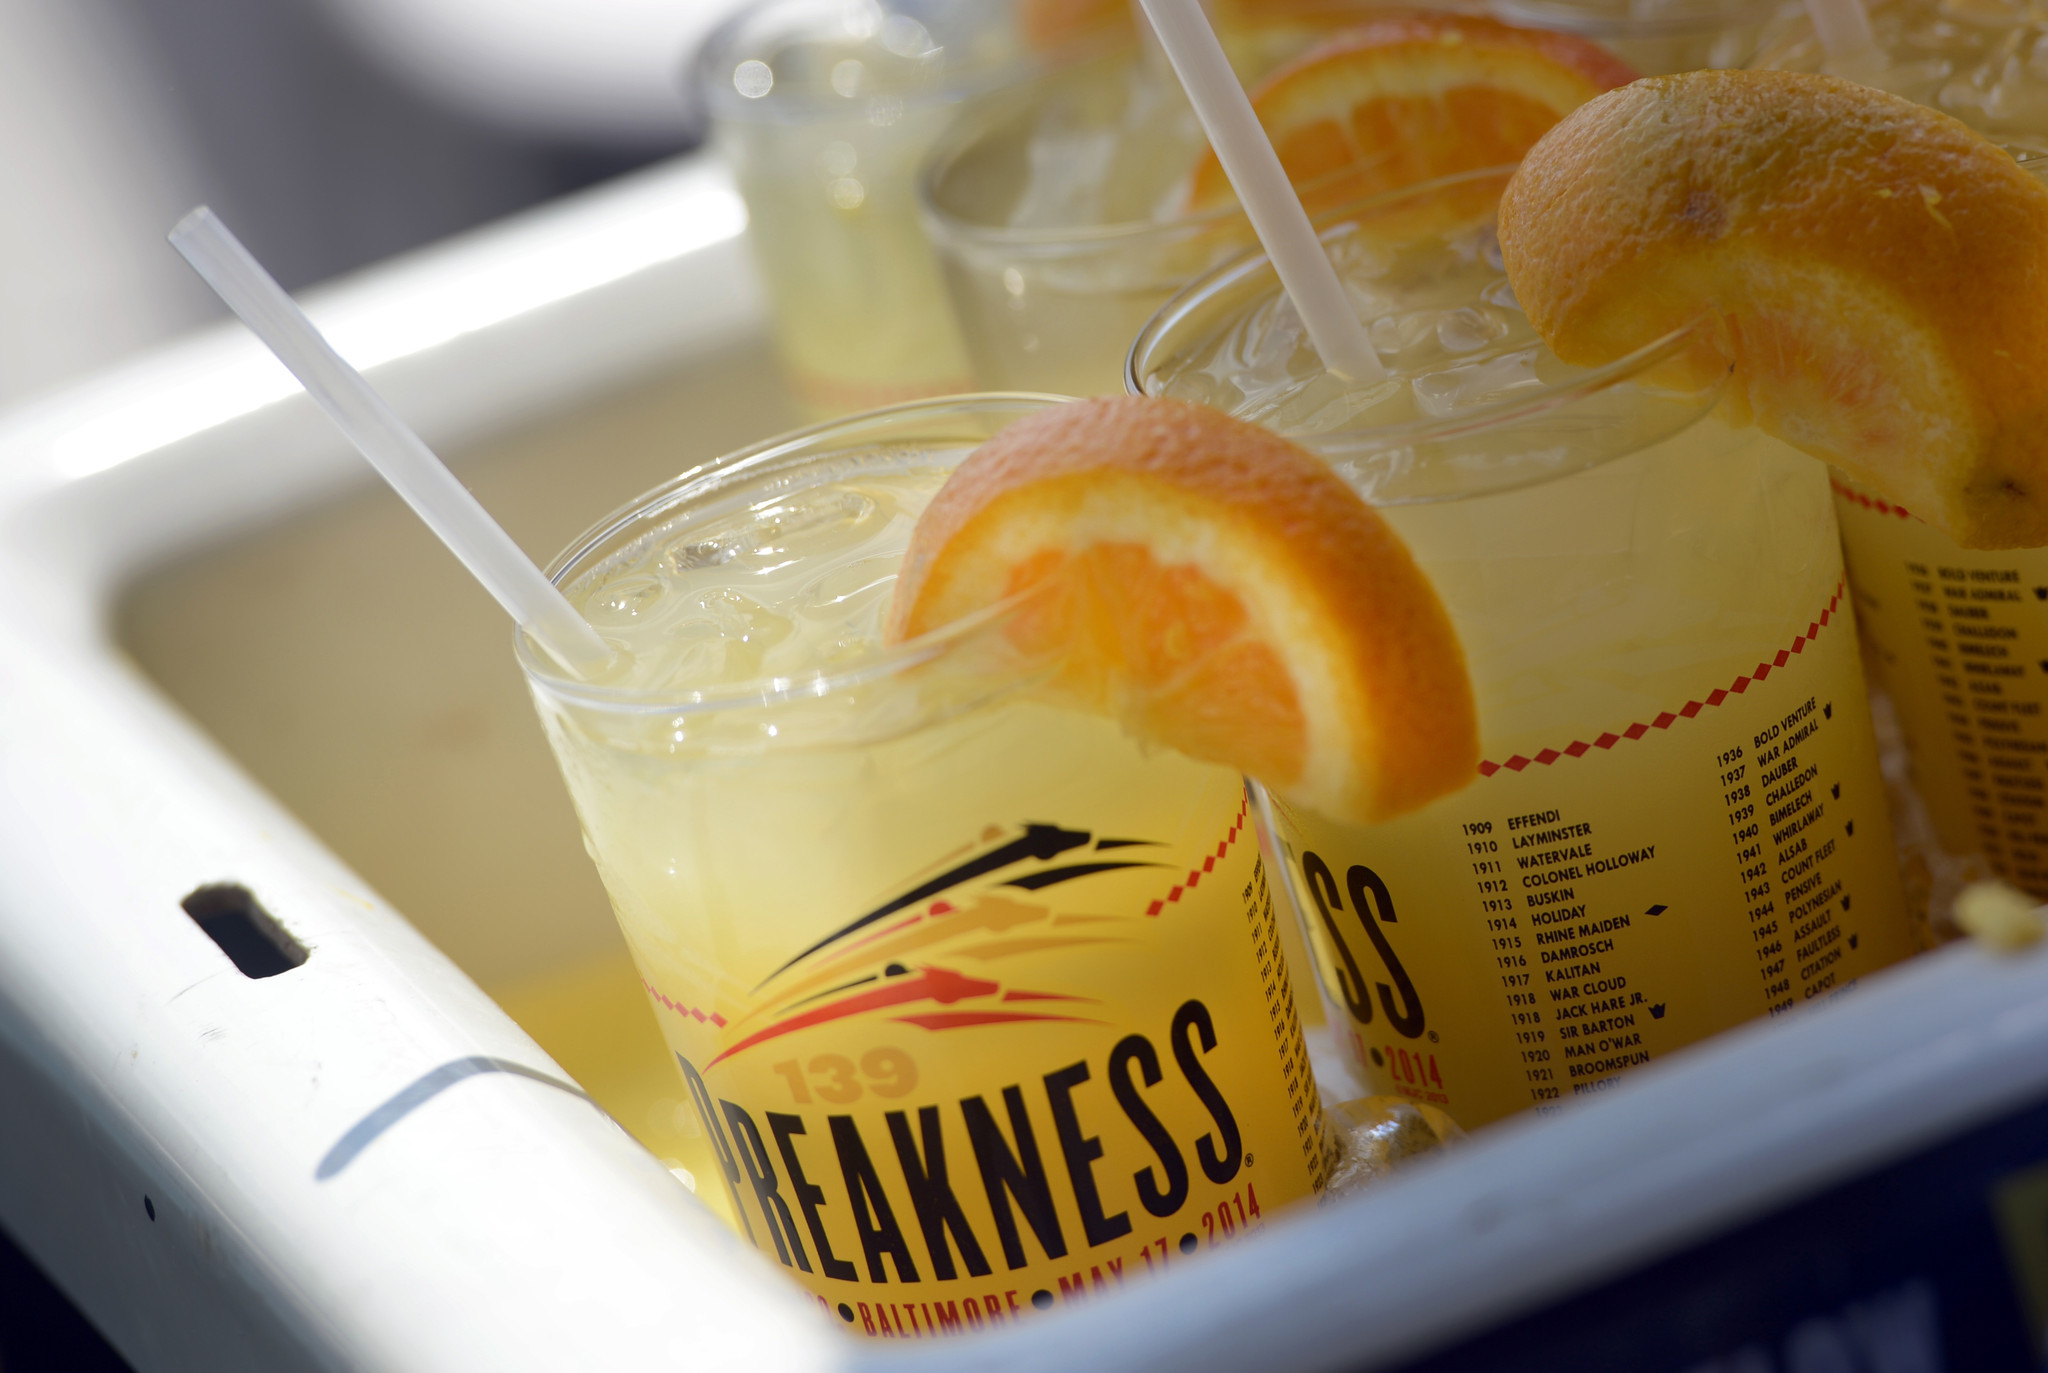 50 things Baltimore foodies must try [Pictures] - Have a Black Eyed Susan at the Preakness.